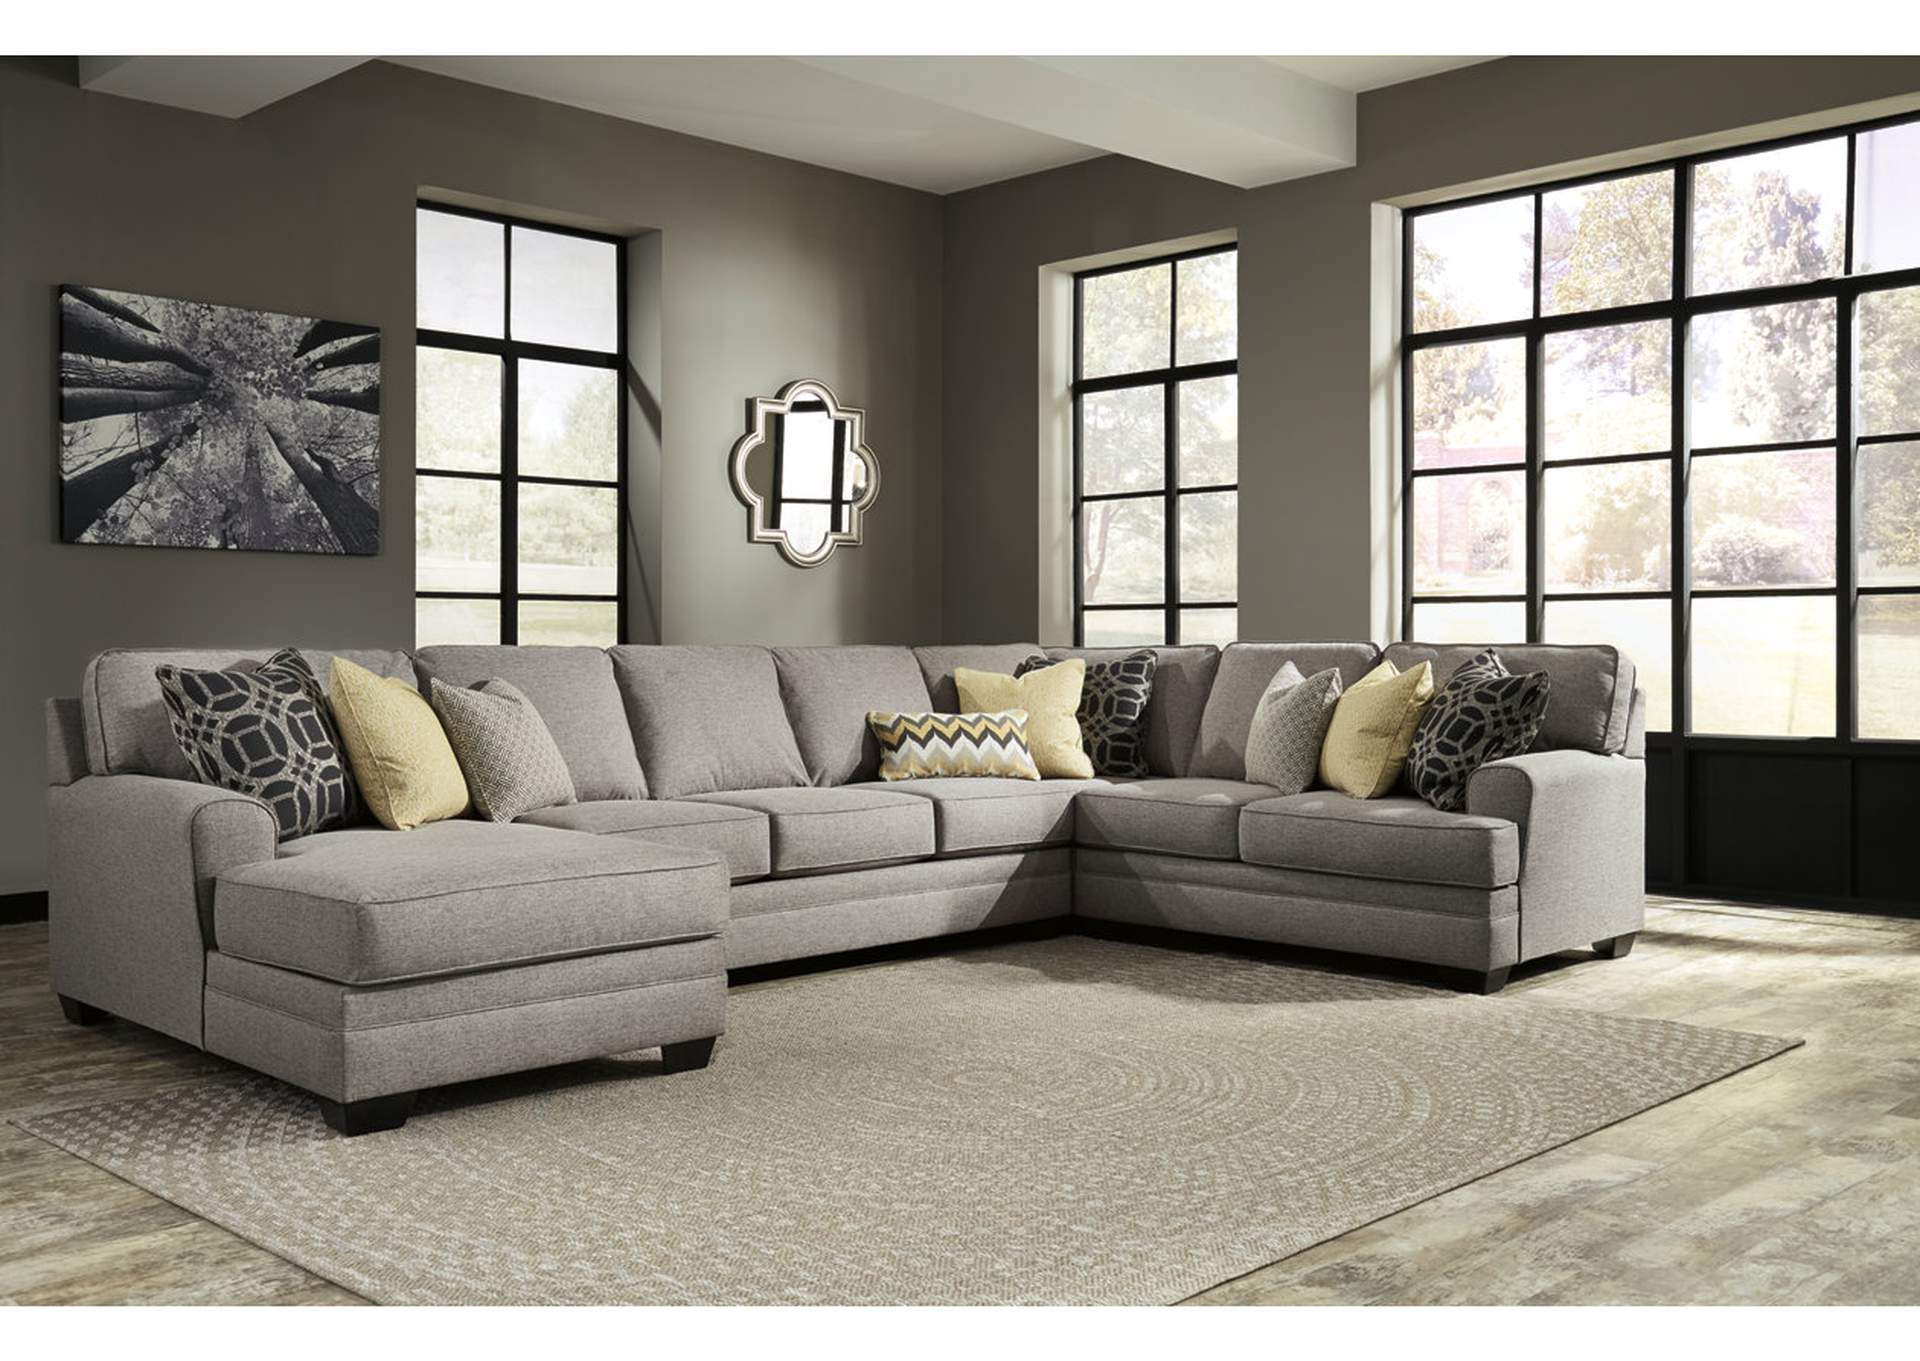 Cresson Pewter 4 Piece LAF Chaise Sectional,Benchcraft